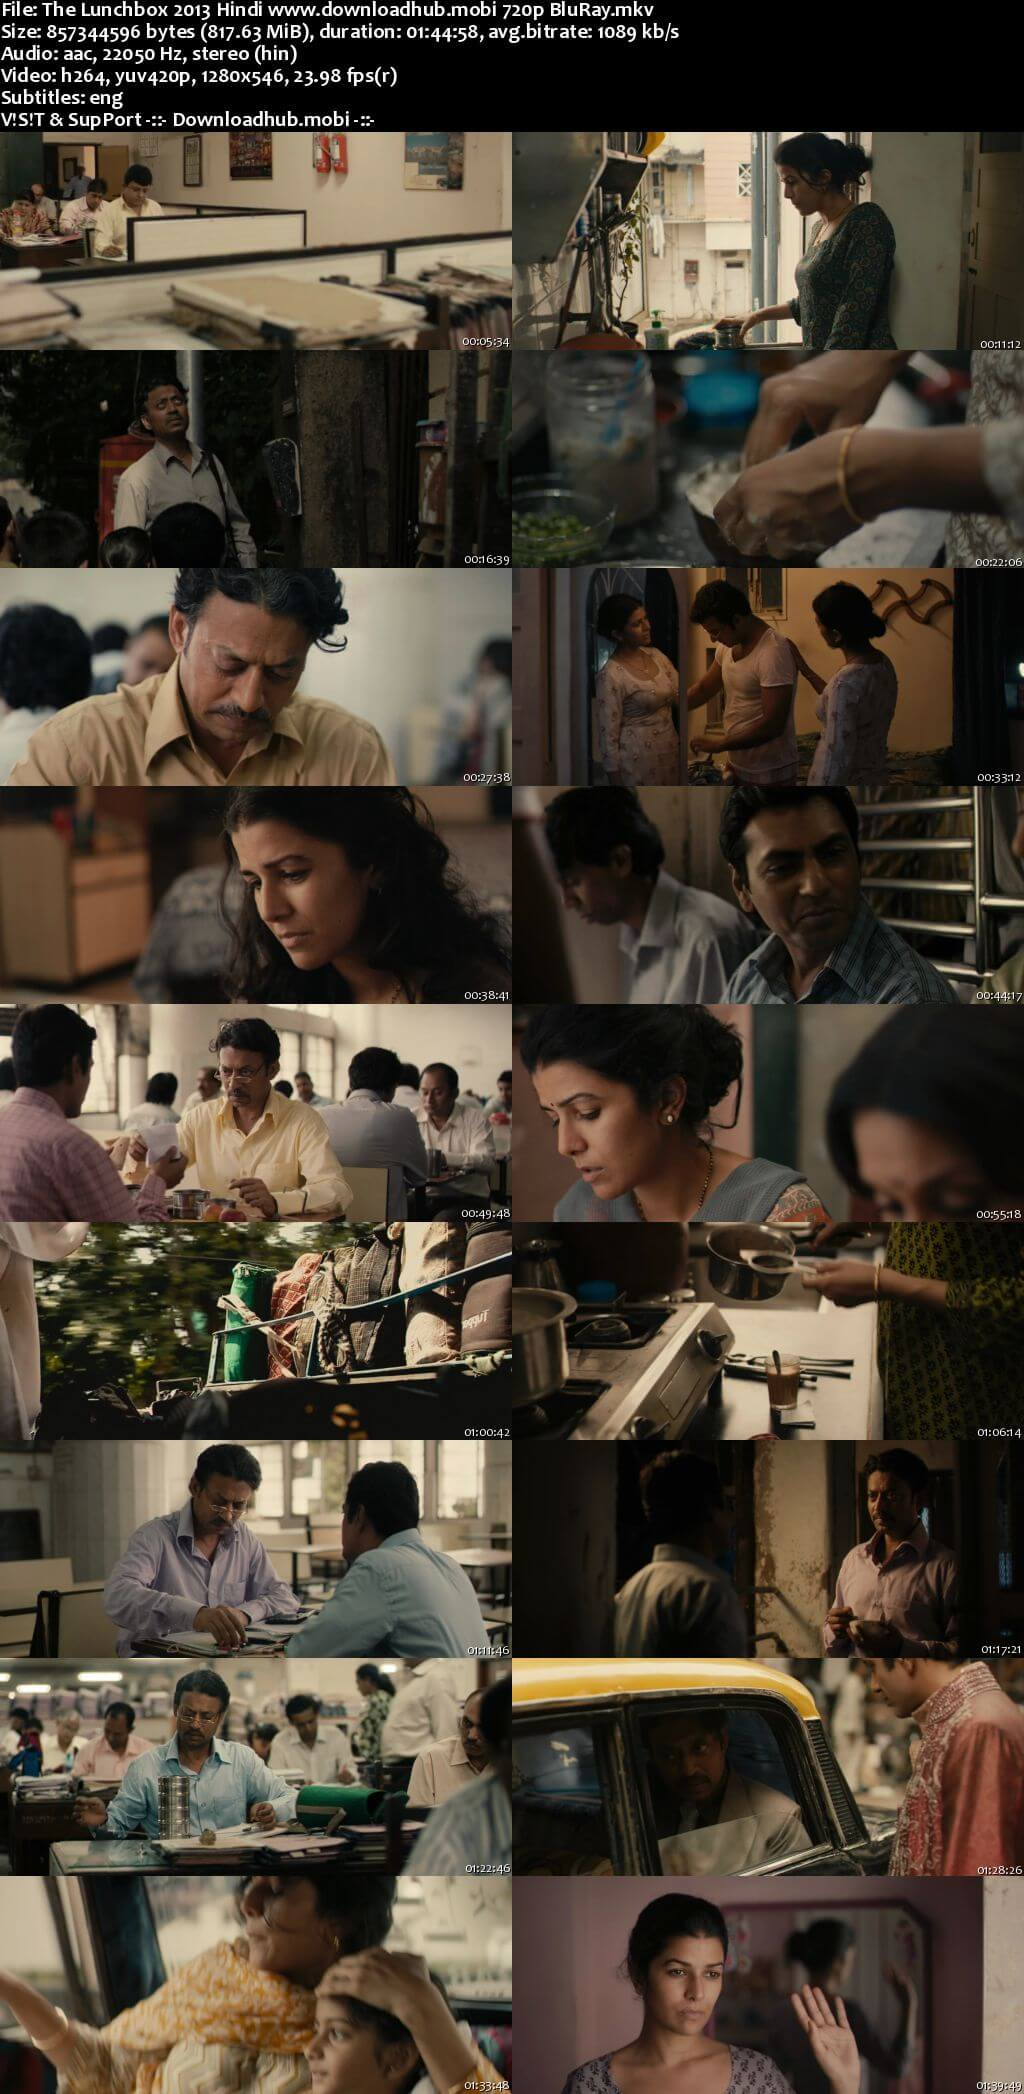 The Lunchbox 2013 Hindi 720p BluRay ESubs